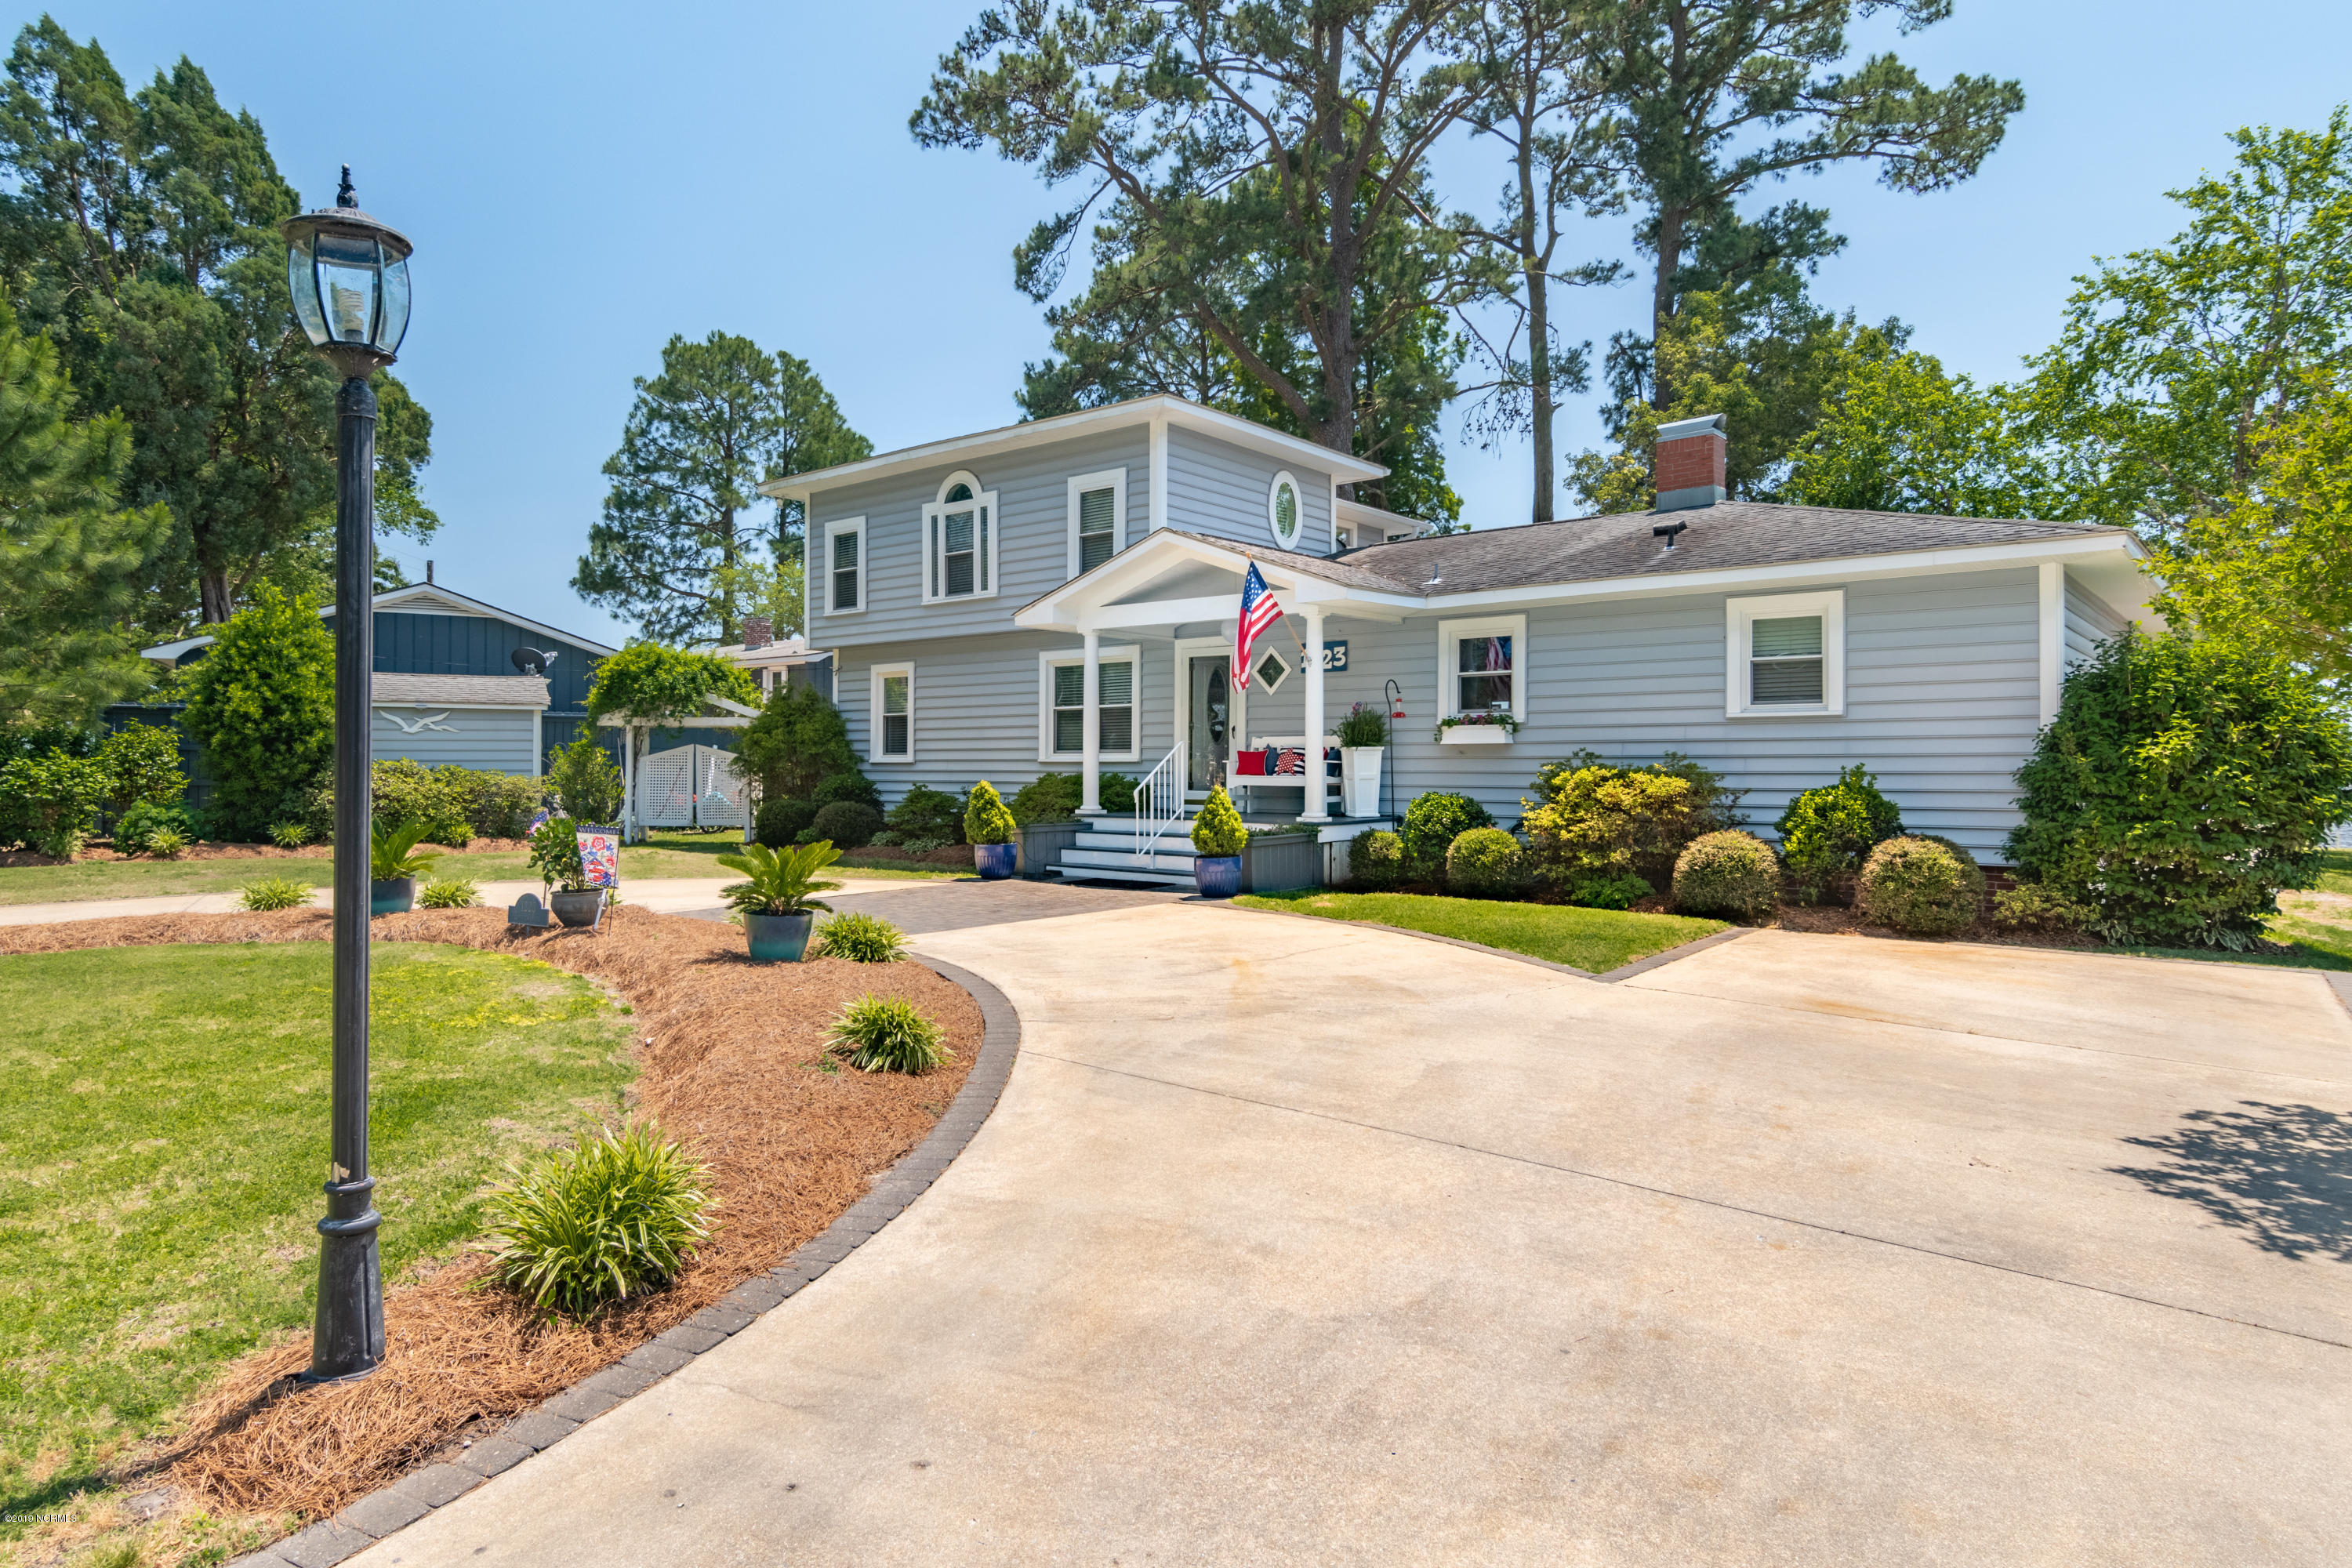 1223 Bayview Road, Bath, North Carolina 27808, 3 Bedrooms Bedrooms, 9 Rooms Rooms,3 BathroomsBathrooms,Single family residence,For sale,Bayview,100166974